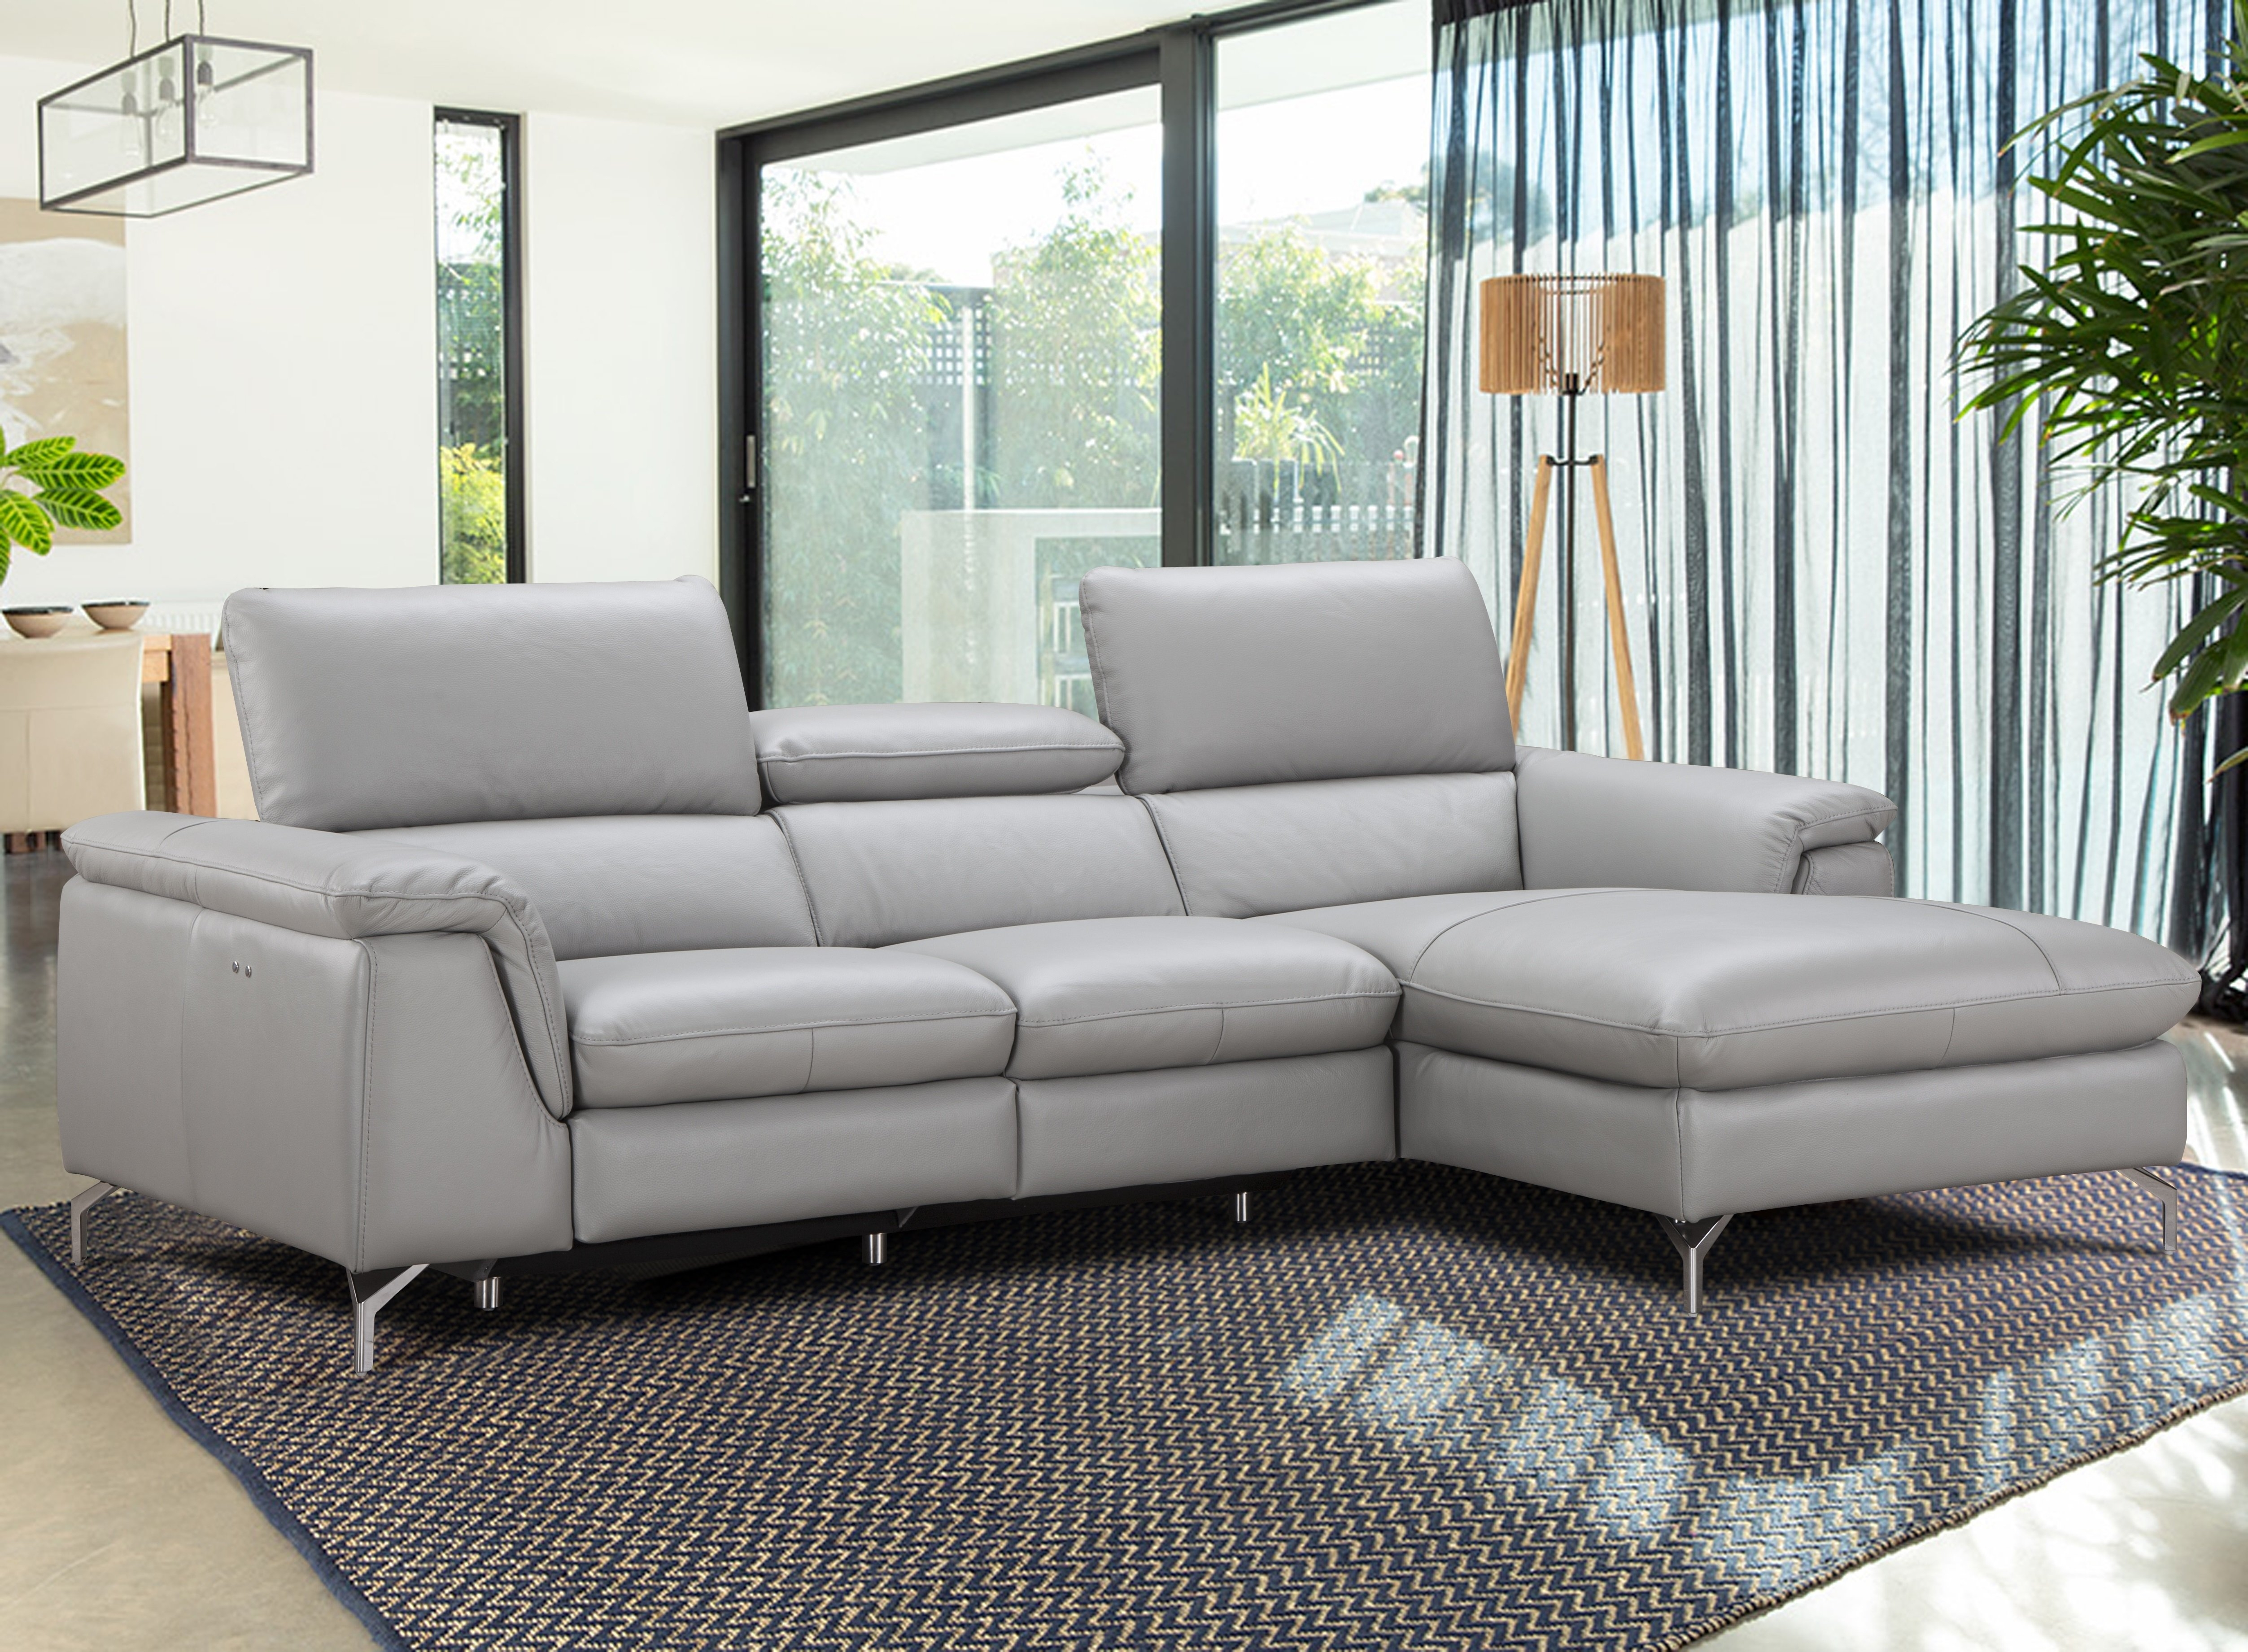 J&m Furniture Serena Leather Reclining Sectional & Reviews   Wayfair For Adeline 3 Piece Sectionals (Image 14 of 25)